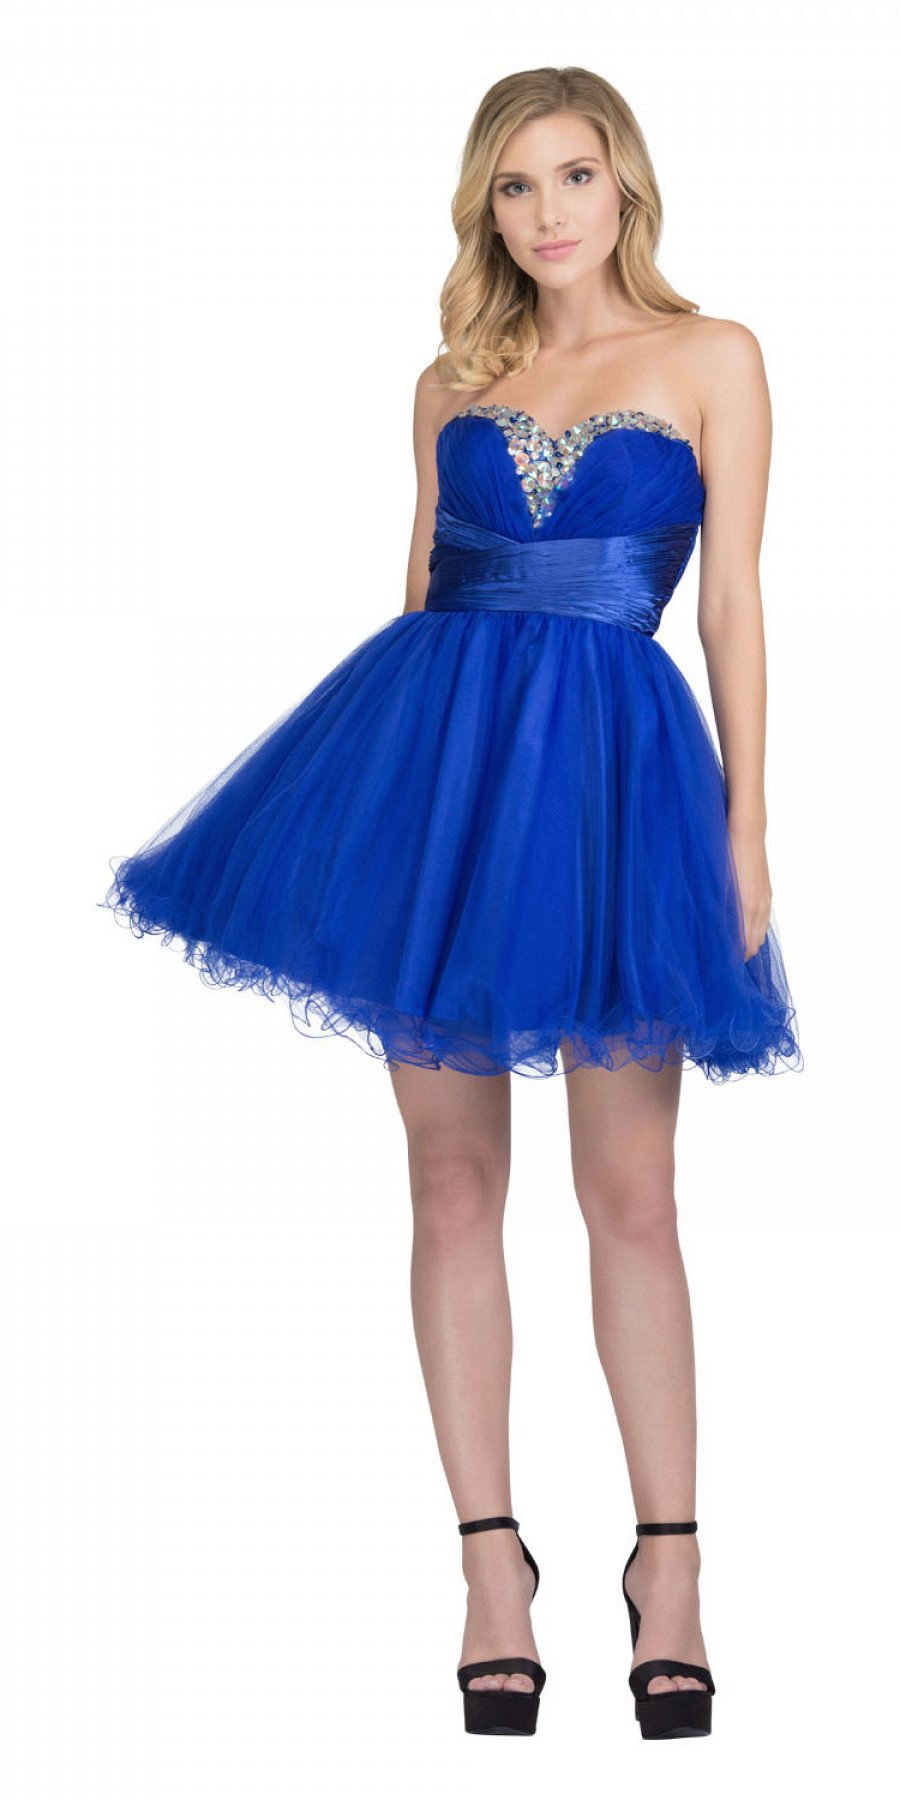 6305003ed0c Rhinestone Studded Neck Ruched Short Royal Blue Prom Dress. Tap to expand